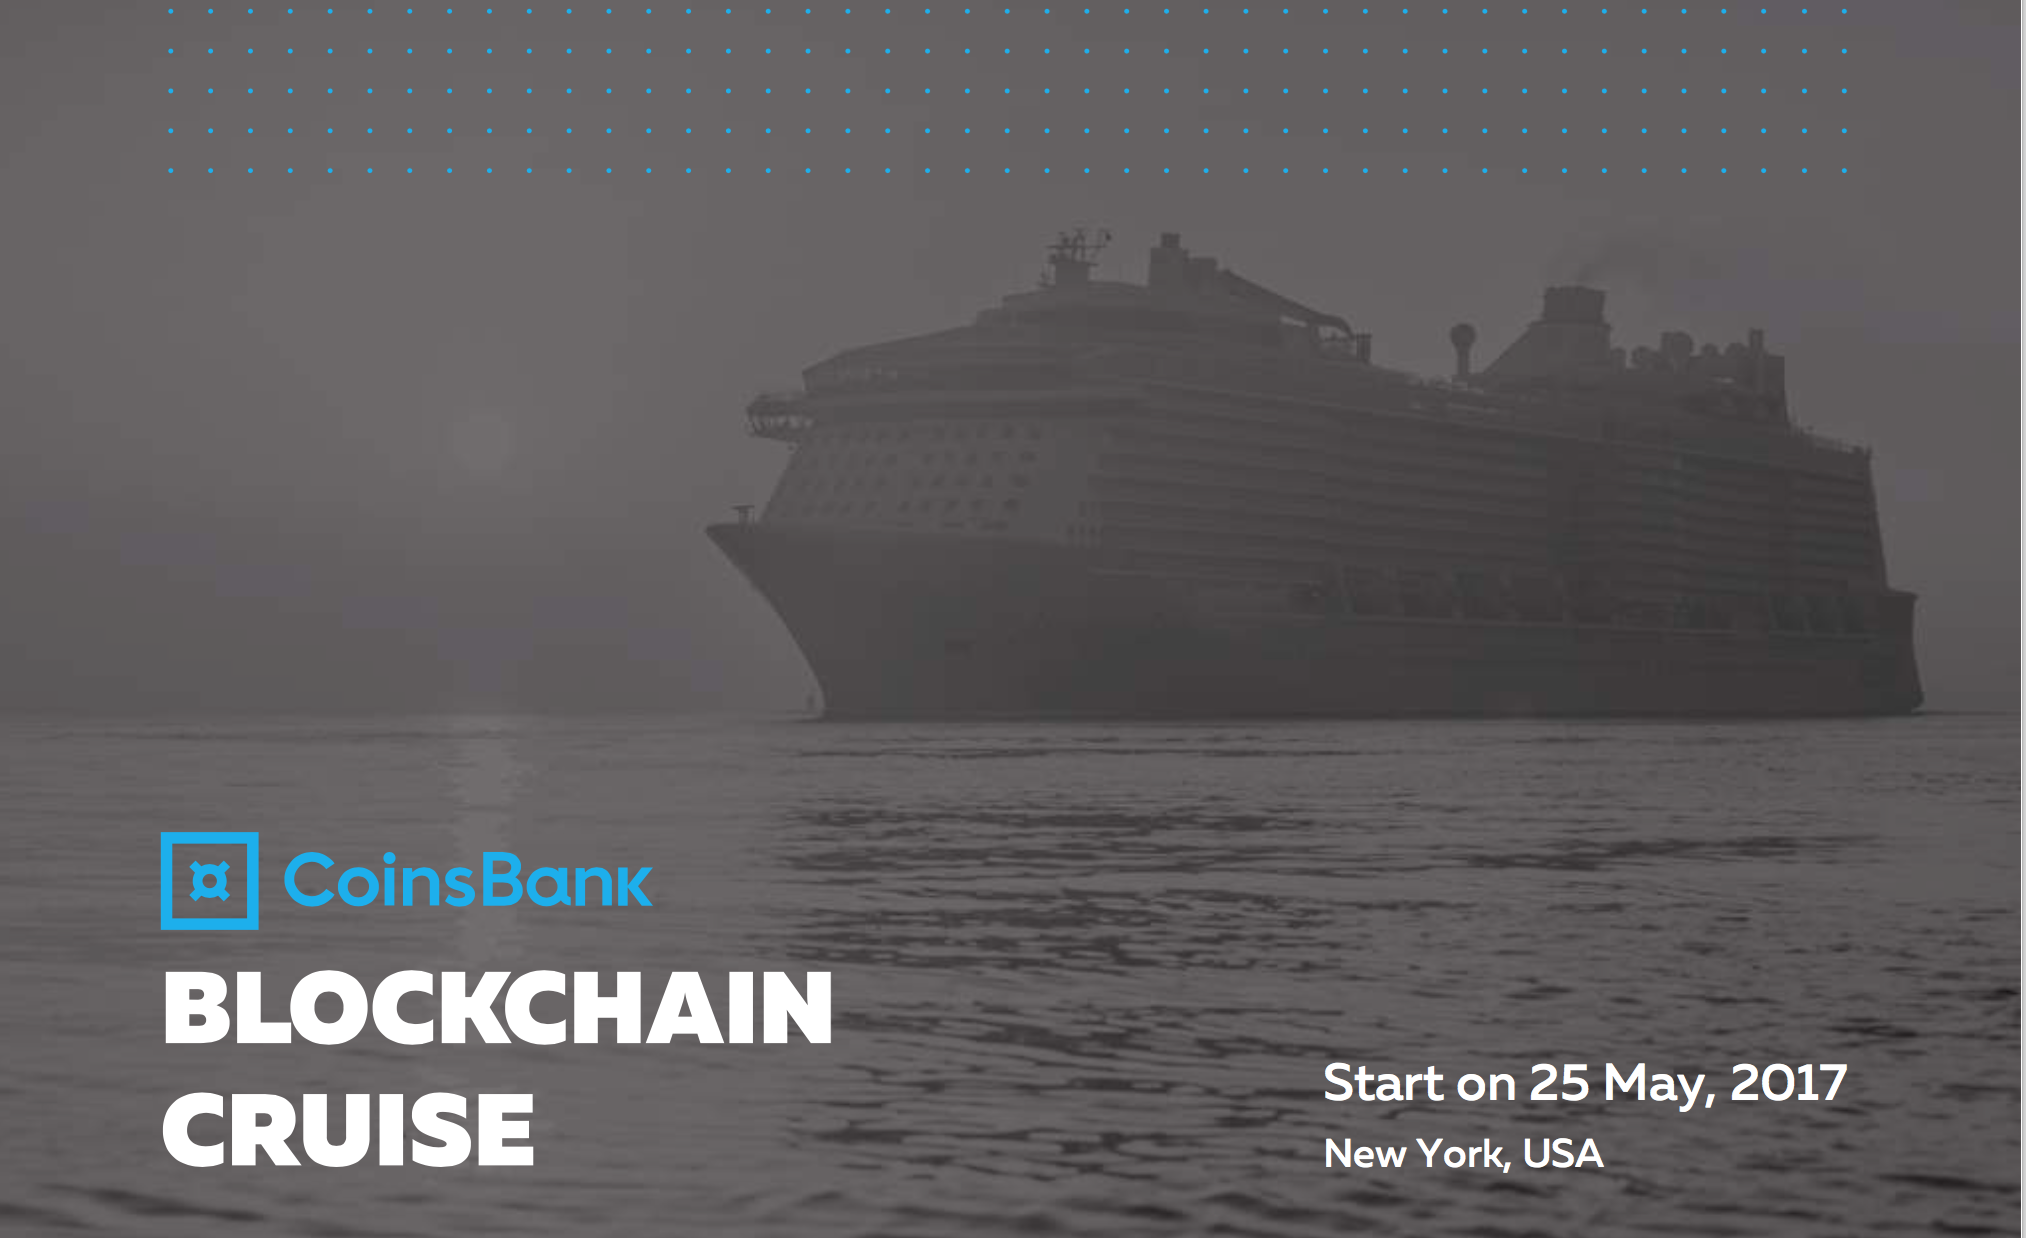 CoinsBank organizes Blockchain Conference Cruise